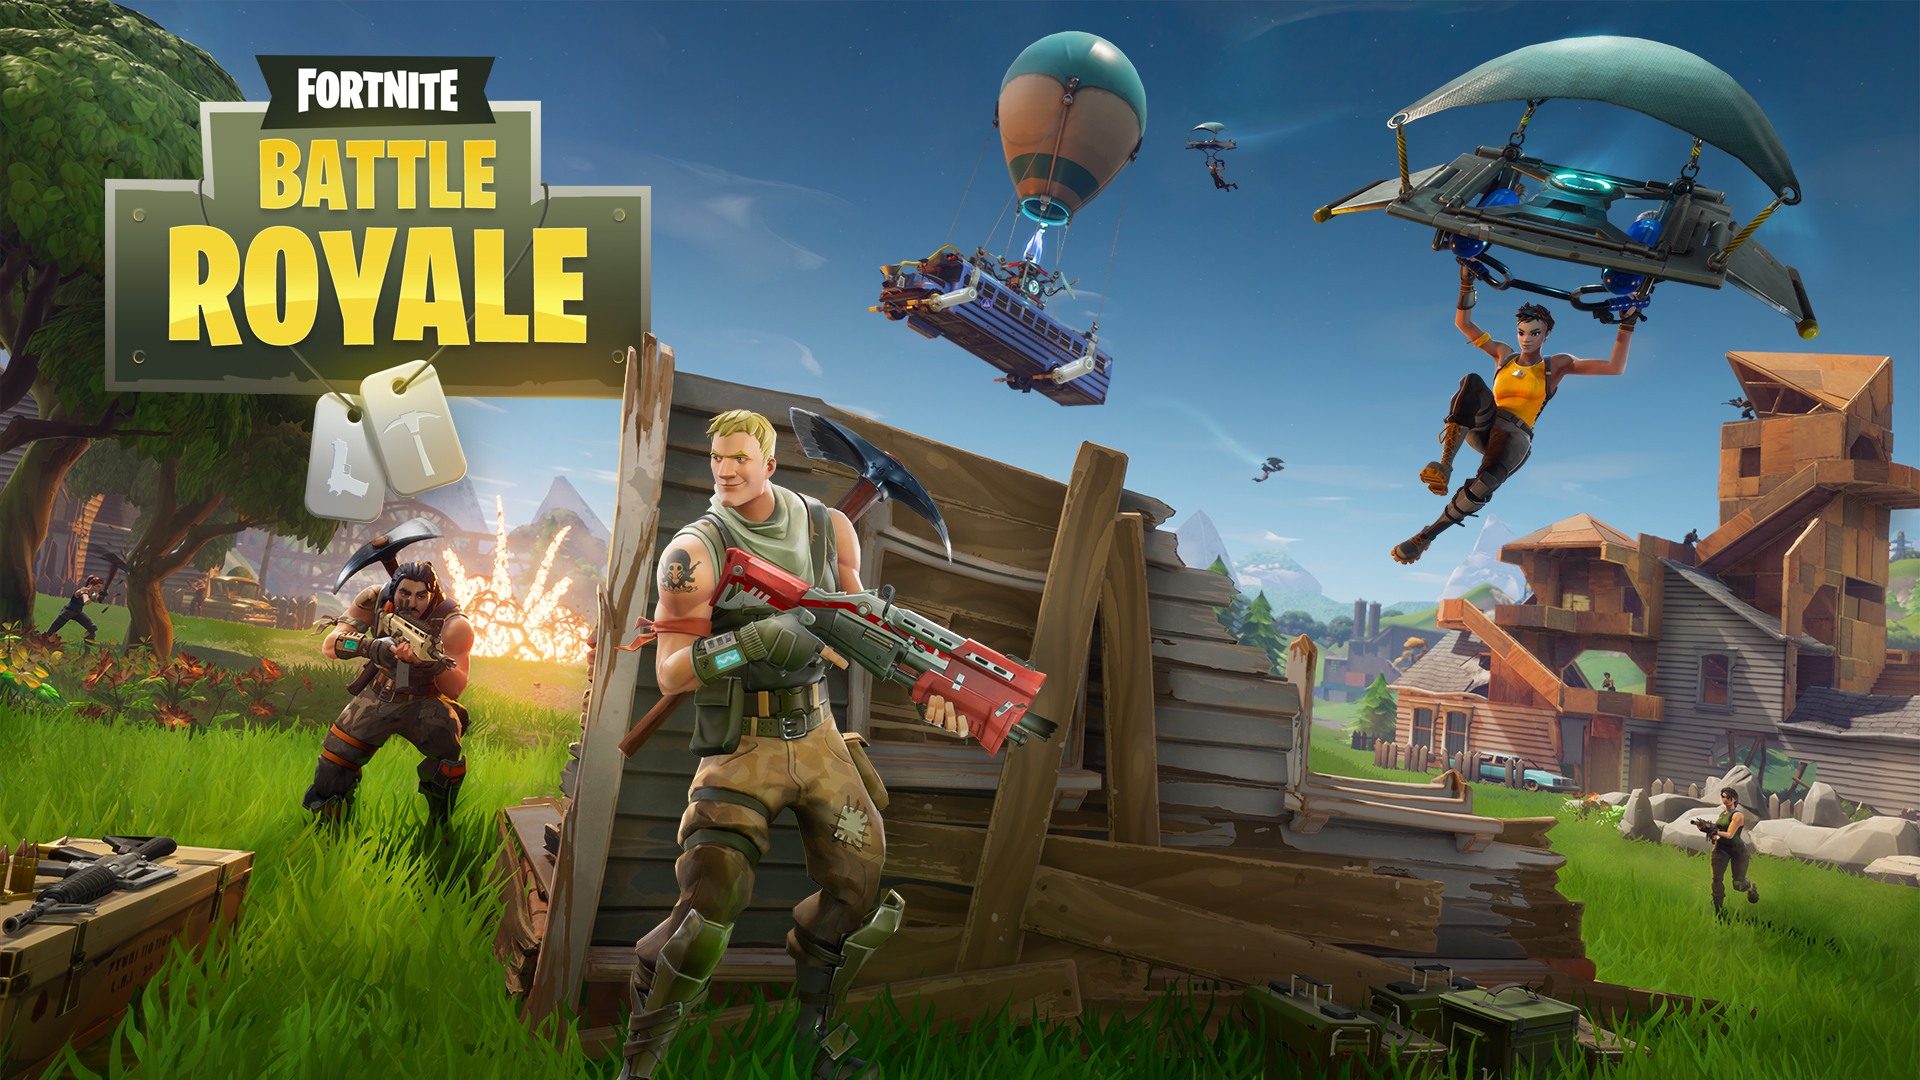 Photo of Fortnite Patch 3.1.0 is out, further optimizations done, new localization and more